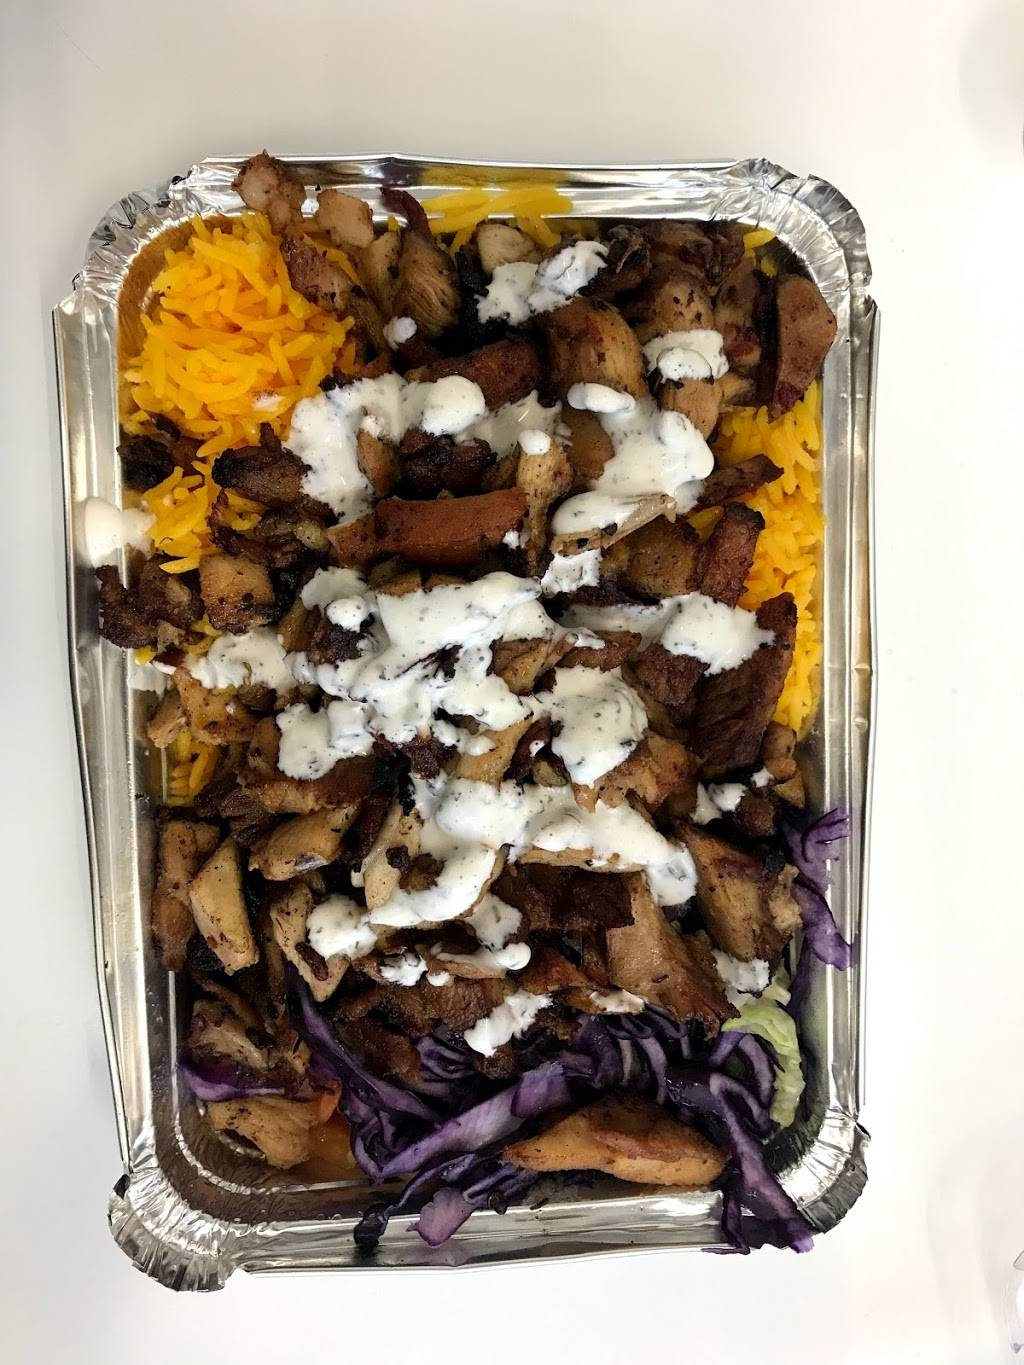 HALAL TURKISH GRILL | restaurant | 313 36th st. 3rd ave, Brooklyn, NY 11232, USA | 9292763160 OR +1 929-276-3160